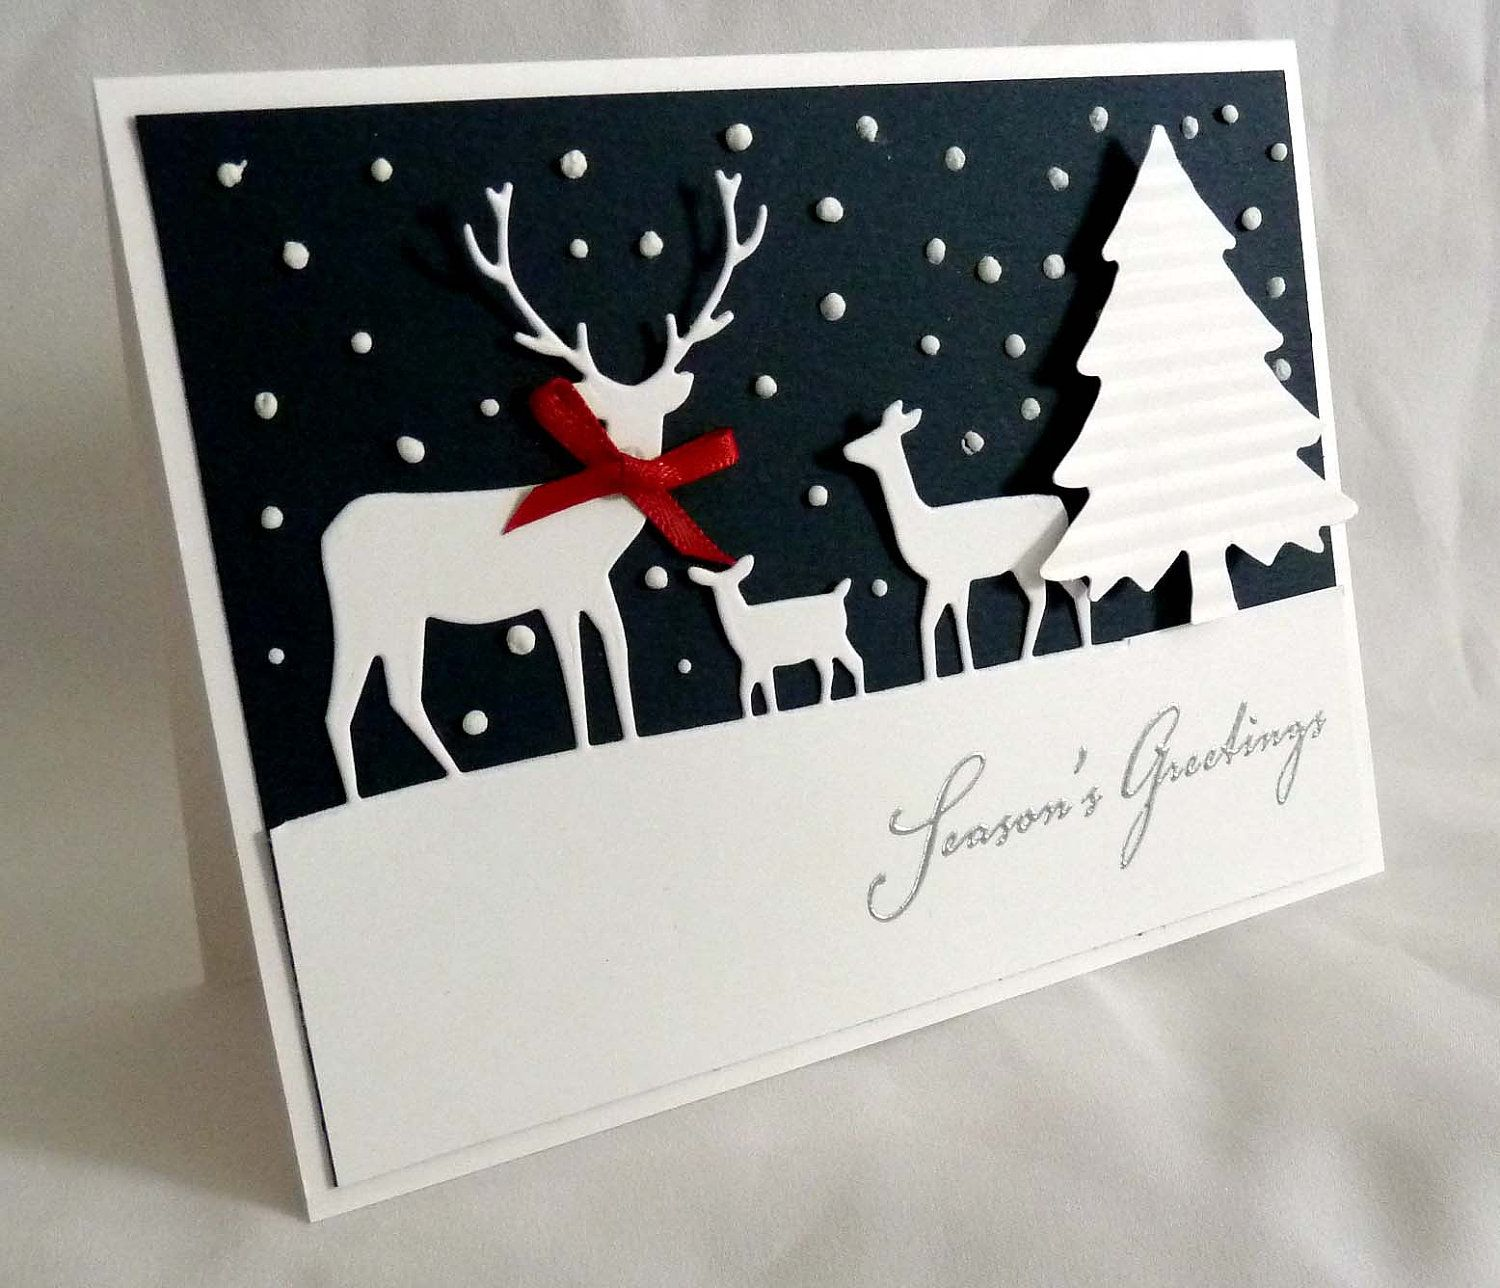 Handmade christmas card black and white die cut deer and tree white polka dots on black background graphic look